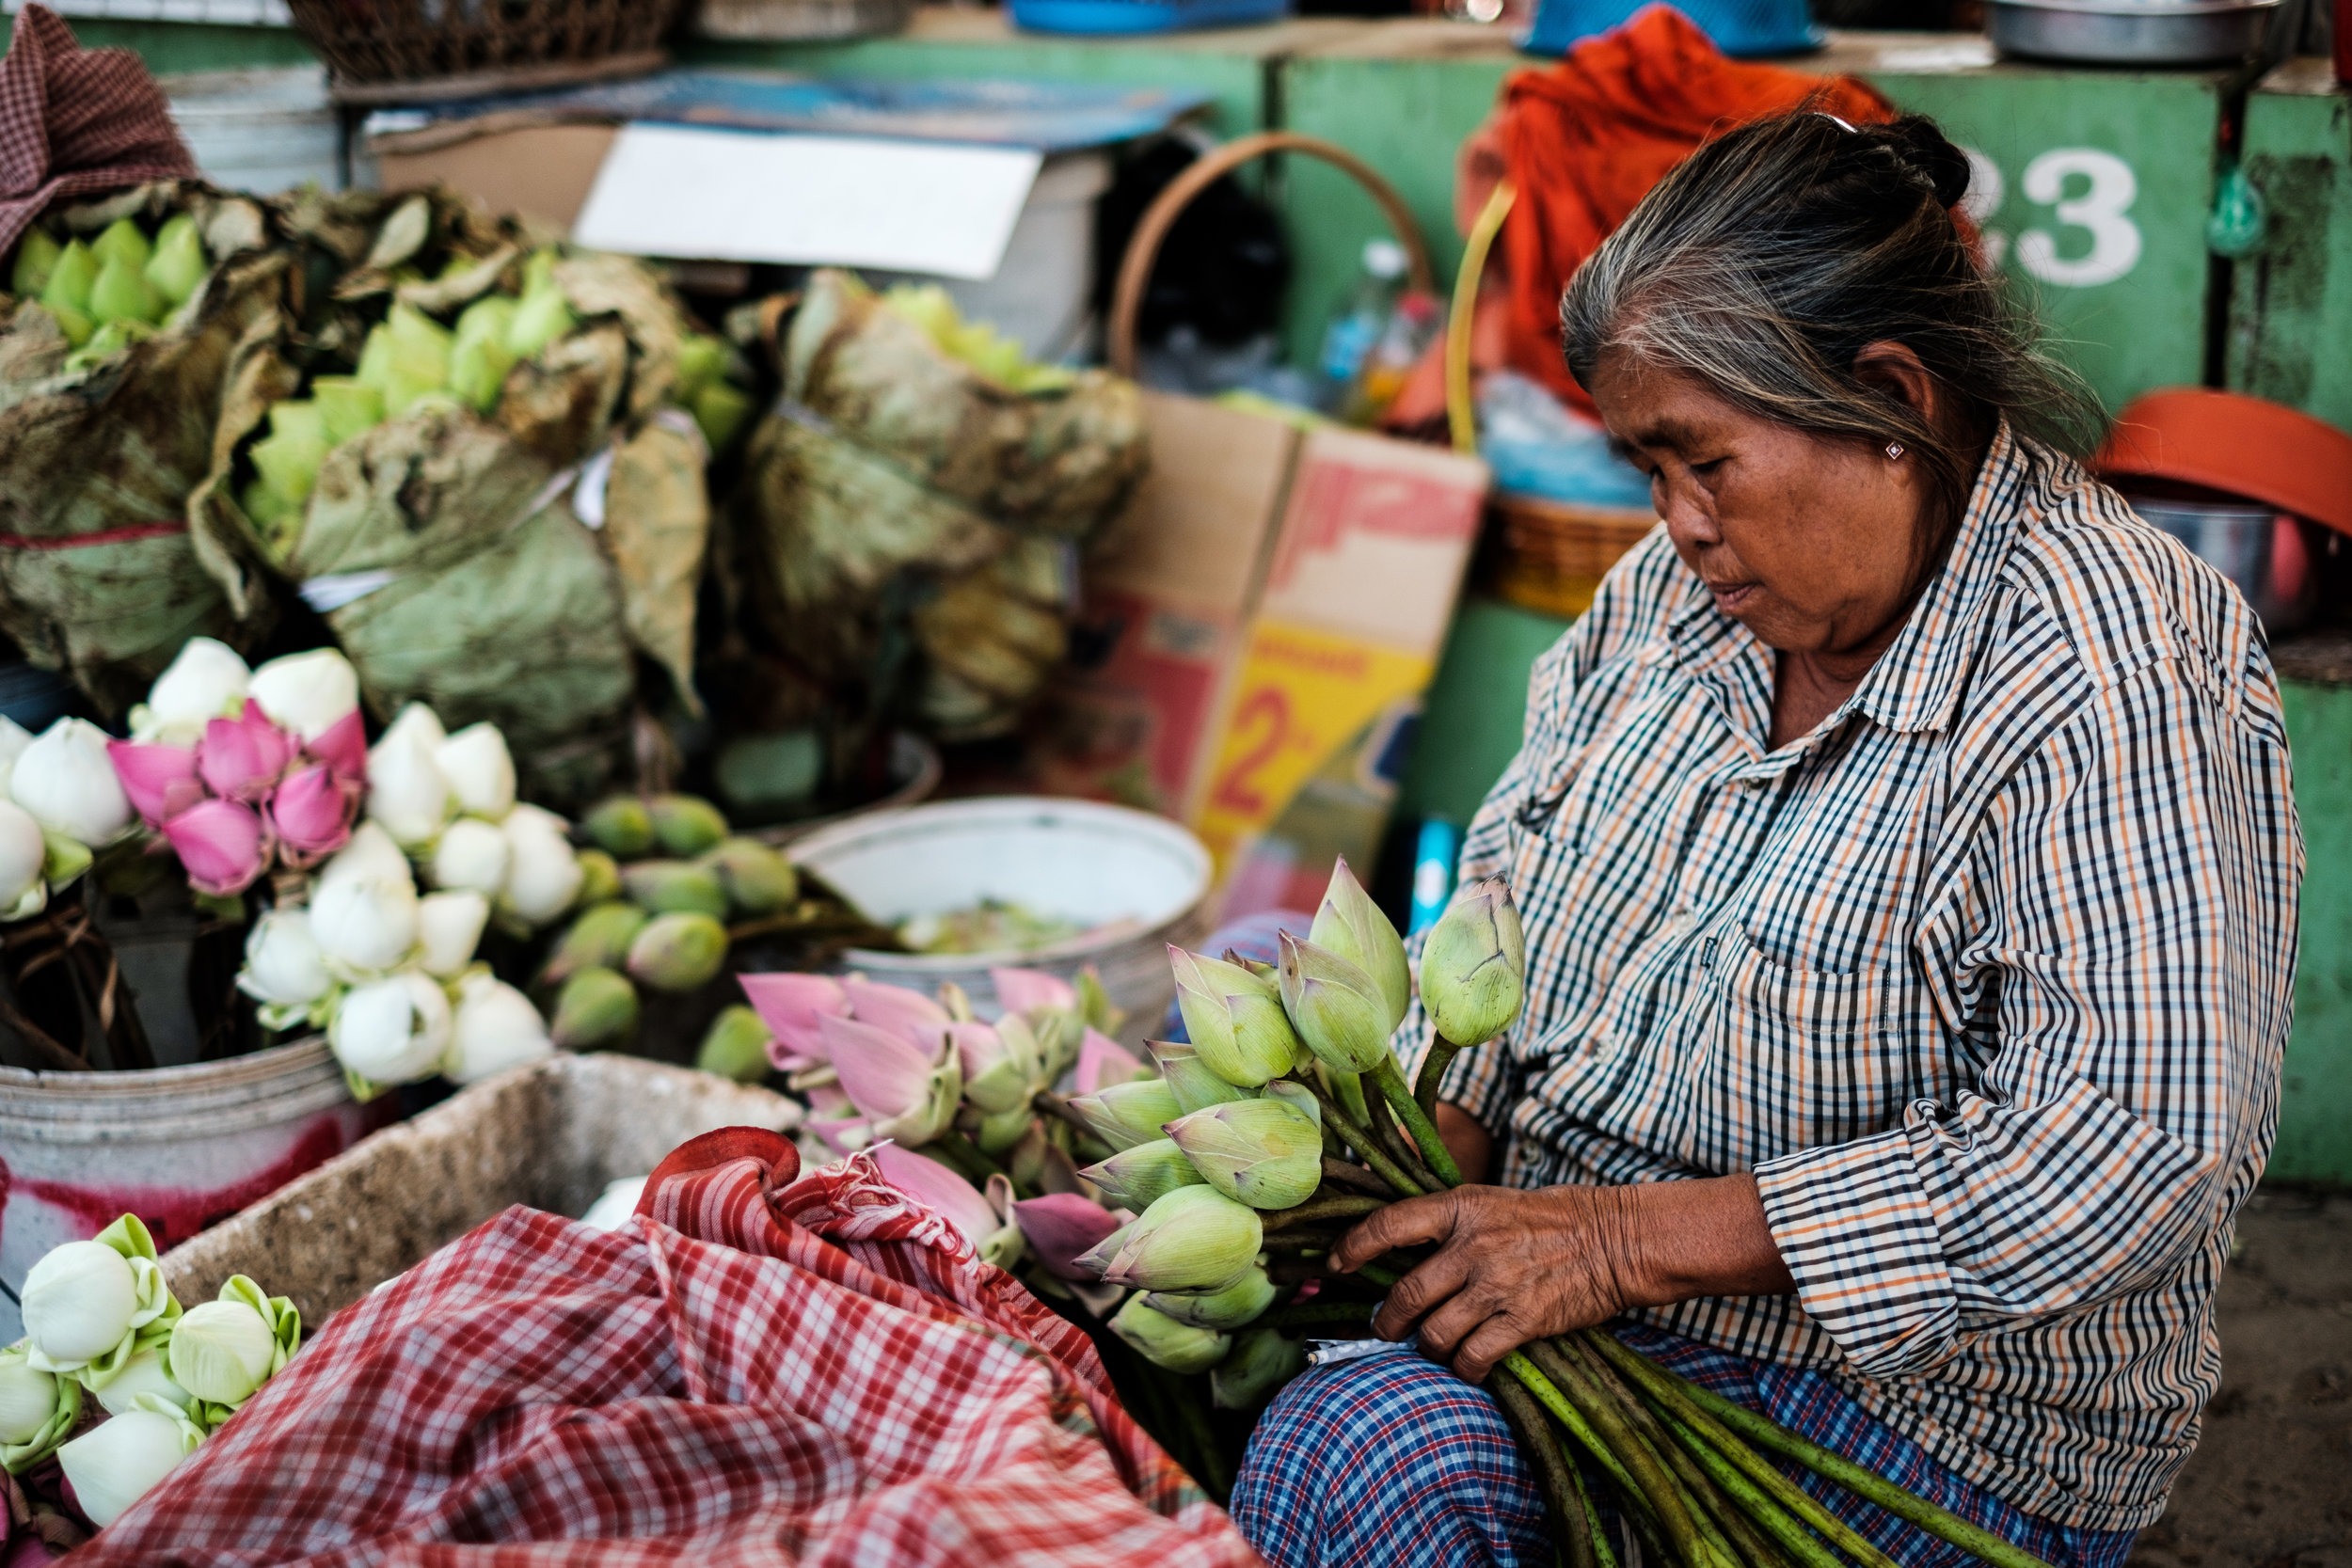 An elderly woman preps Flowers are prepped at a market in Phnom Penh Cambodia